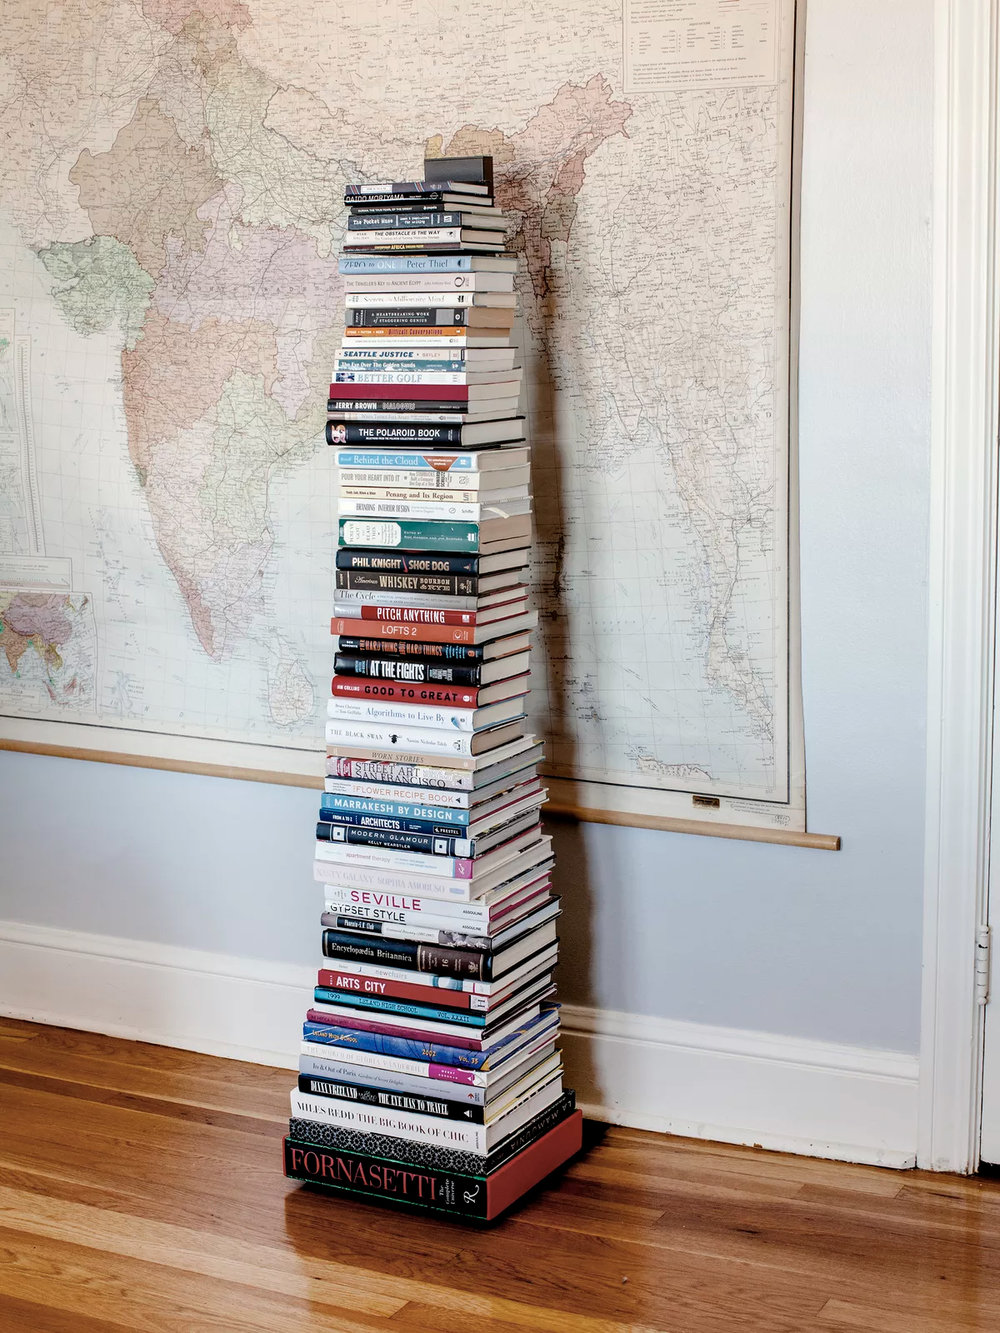 A vertical bookshelf stands in front of a vintage map.